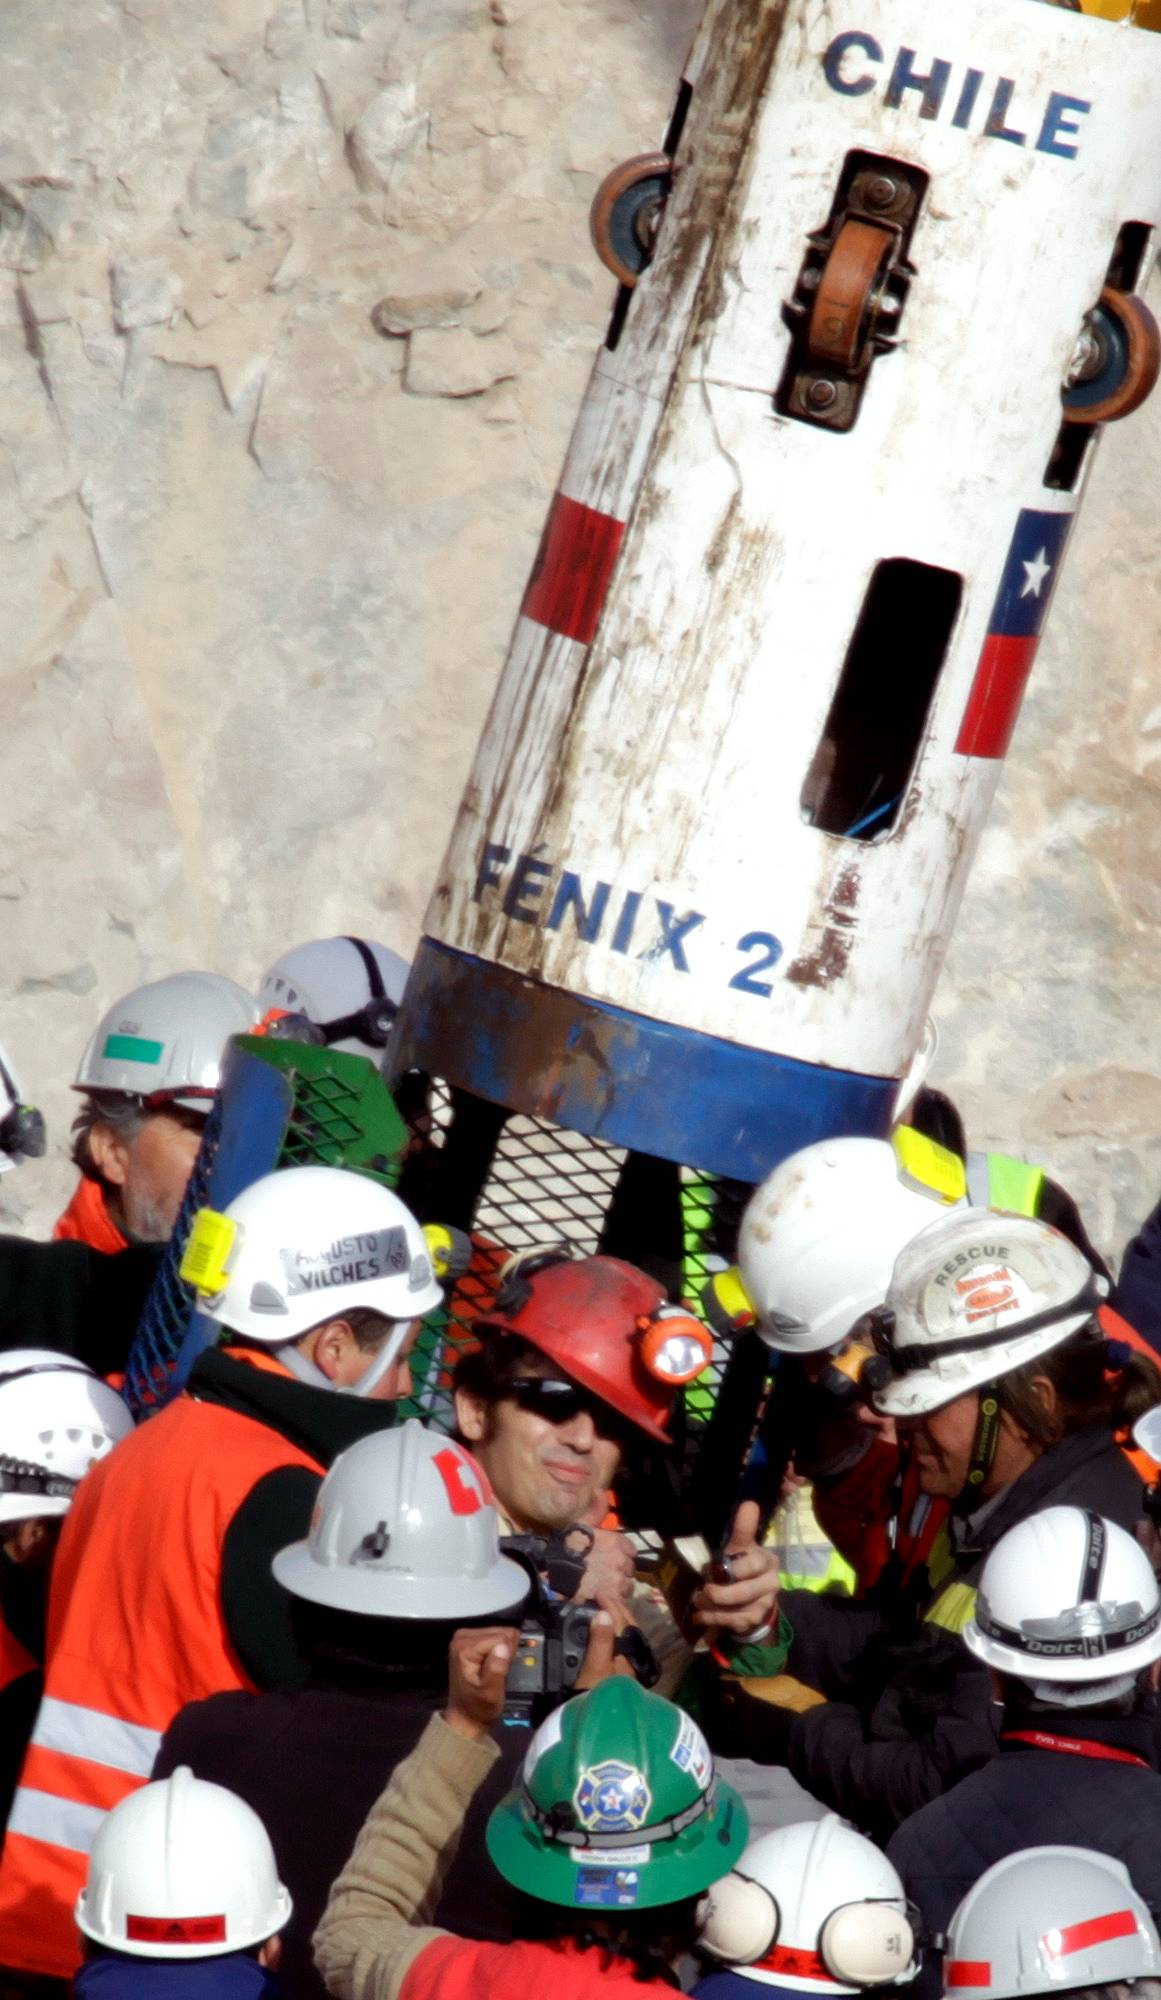 Miner Alex Vega Salazar, center, gives a thumbs up after emerging from the capsule that brought him to the surface from the collapsed San Jose gold and copper mine near Copiapo, Chile, Wednesday. Vega is the tenth of 33 miners who was rescued from the mine after more than 2 months trapped underground.